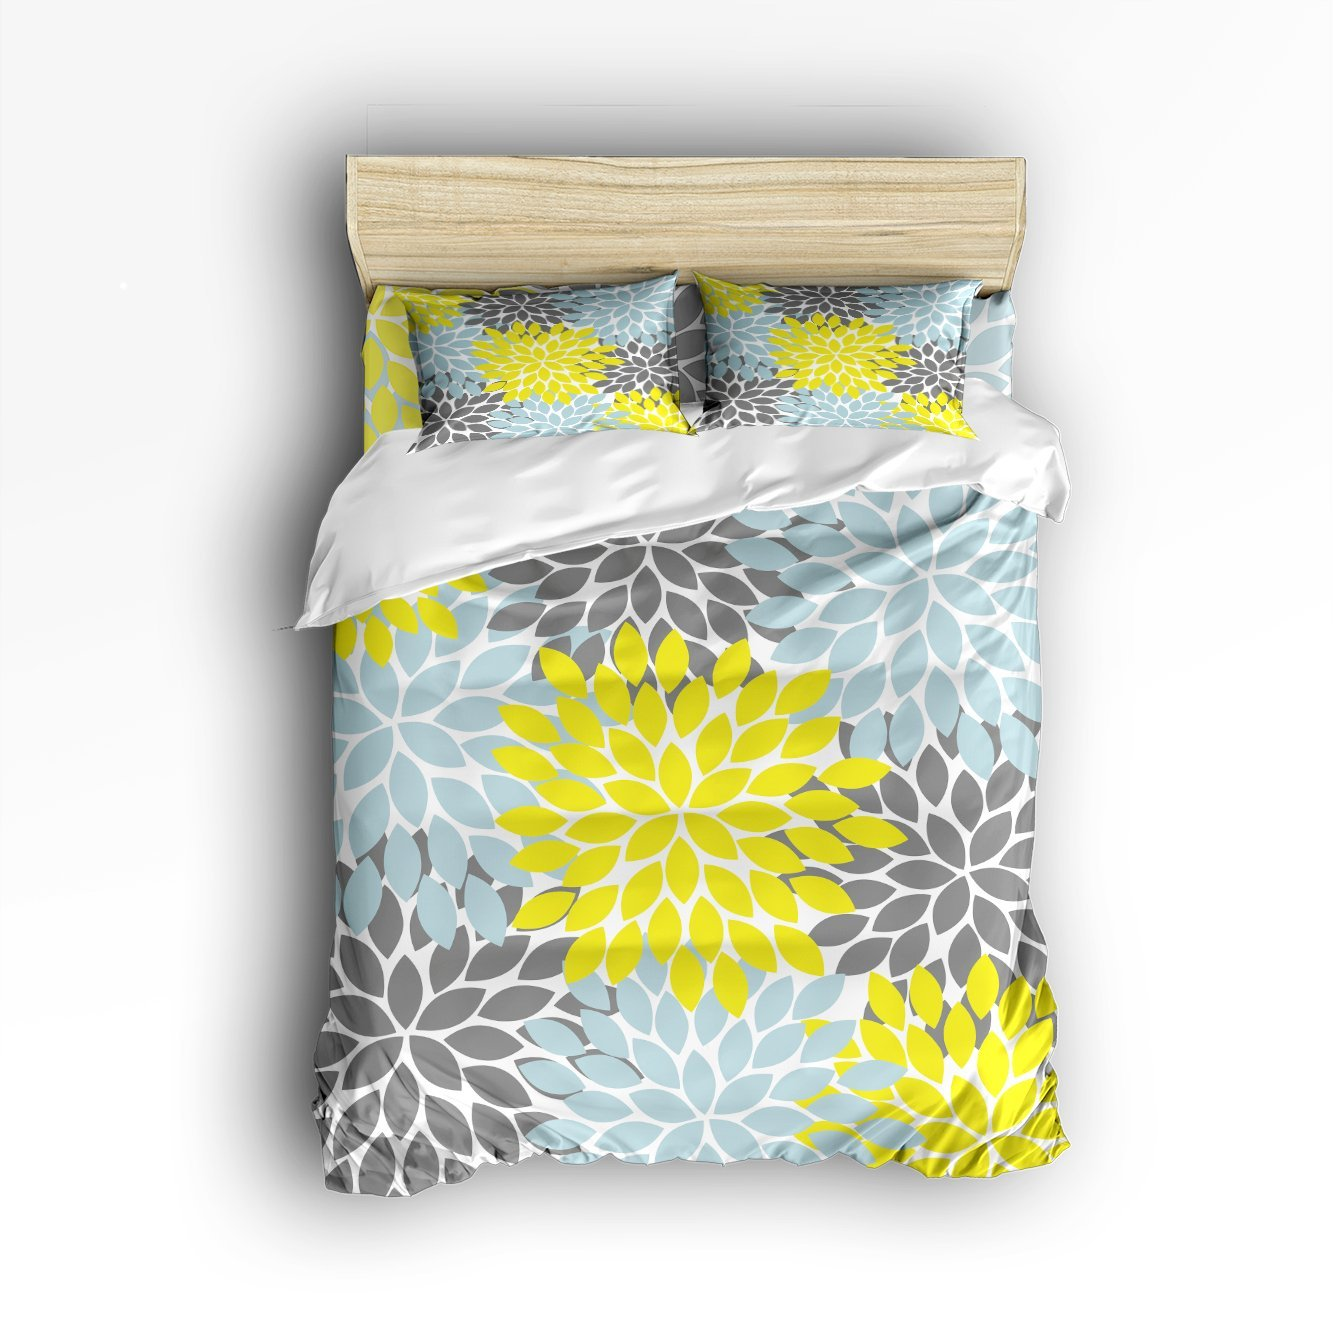 4 Piece Bed Sheets Set, Grey Yellow Blue Dahlia Floral Pattern, 1 Flat Sheet 1 Duvet Cover and 2 Pillow Cases